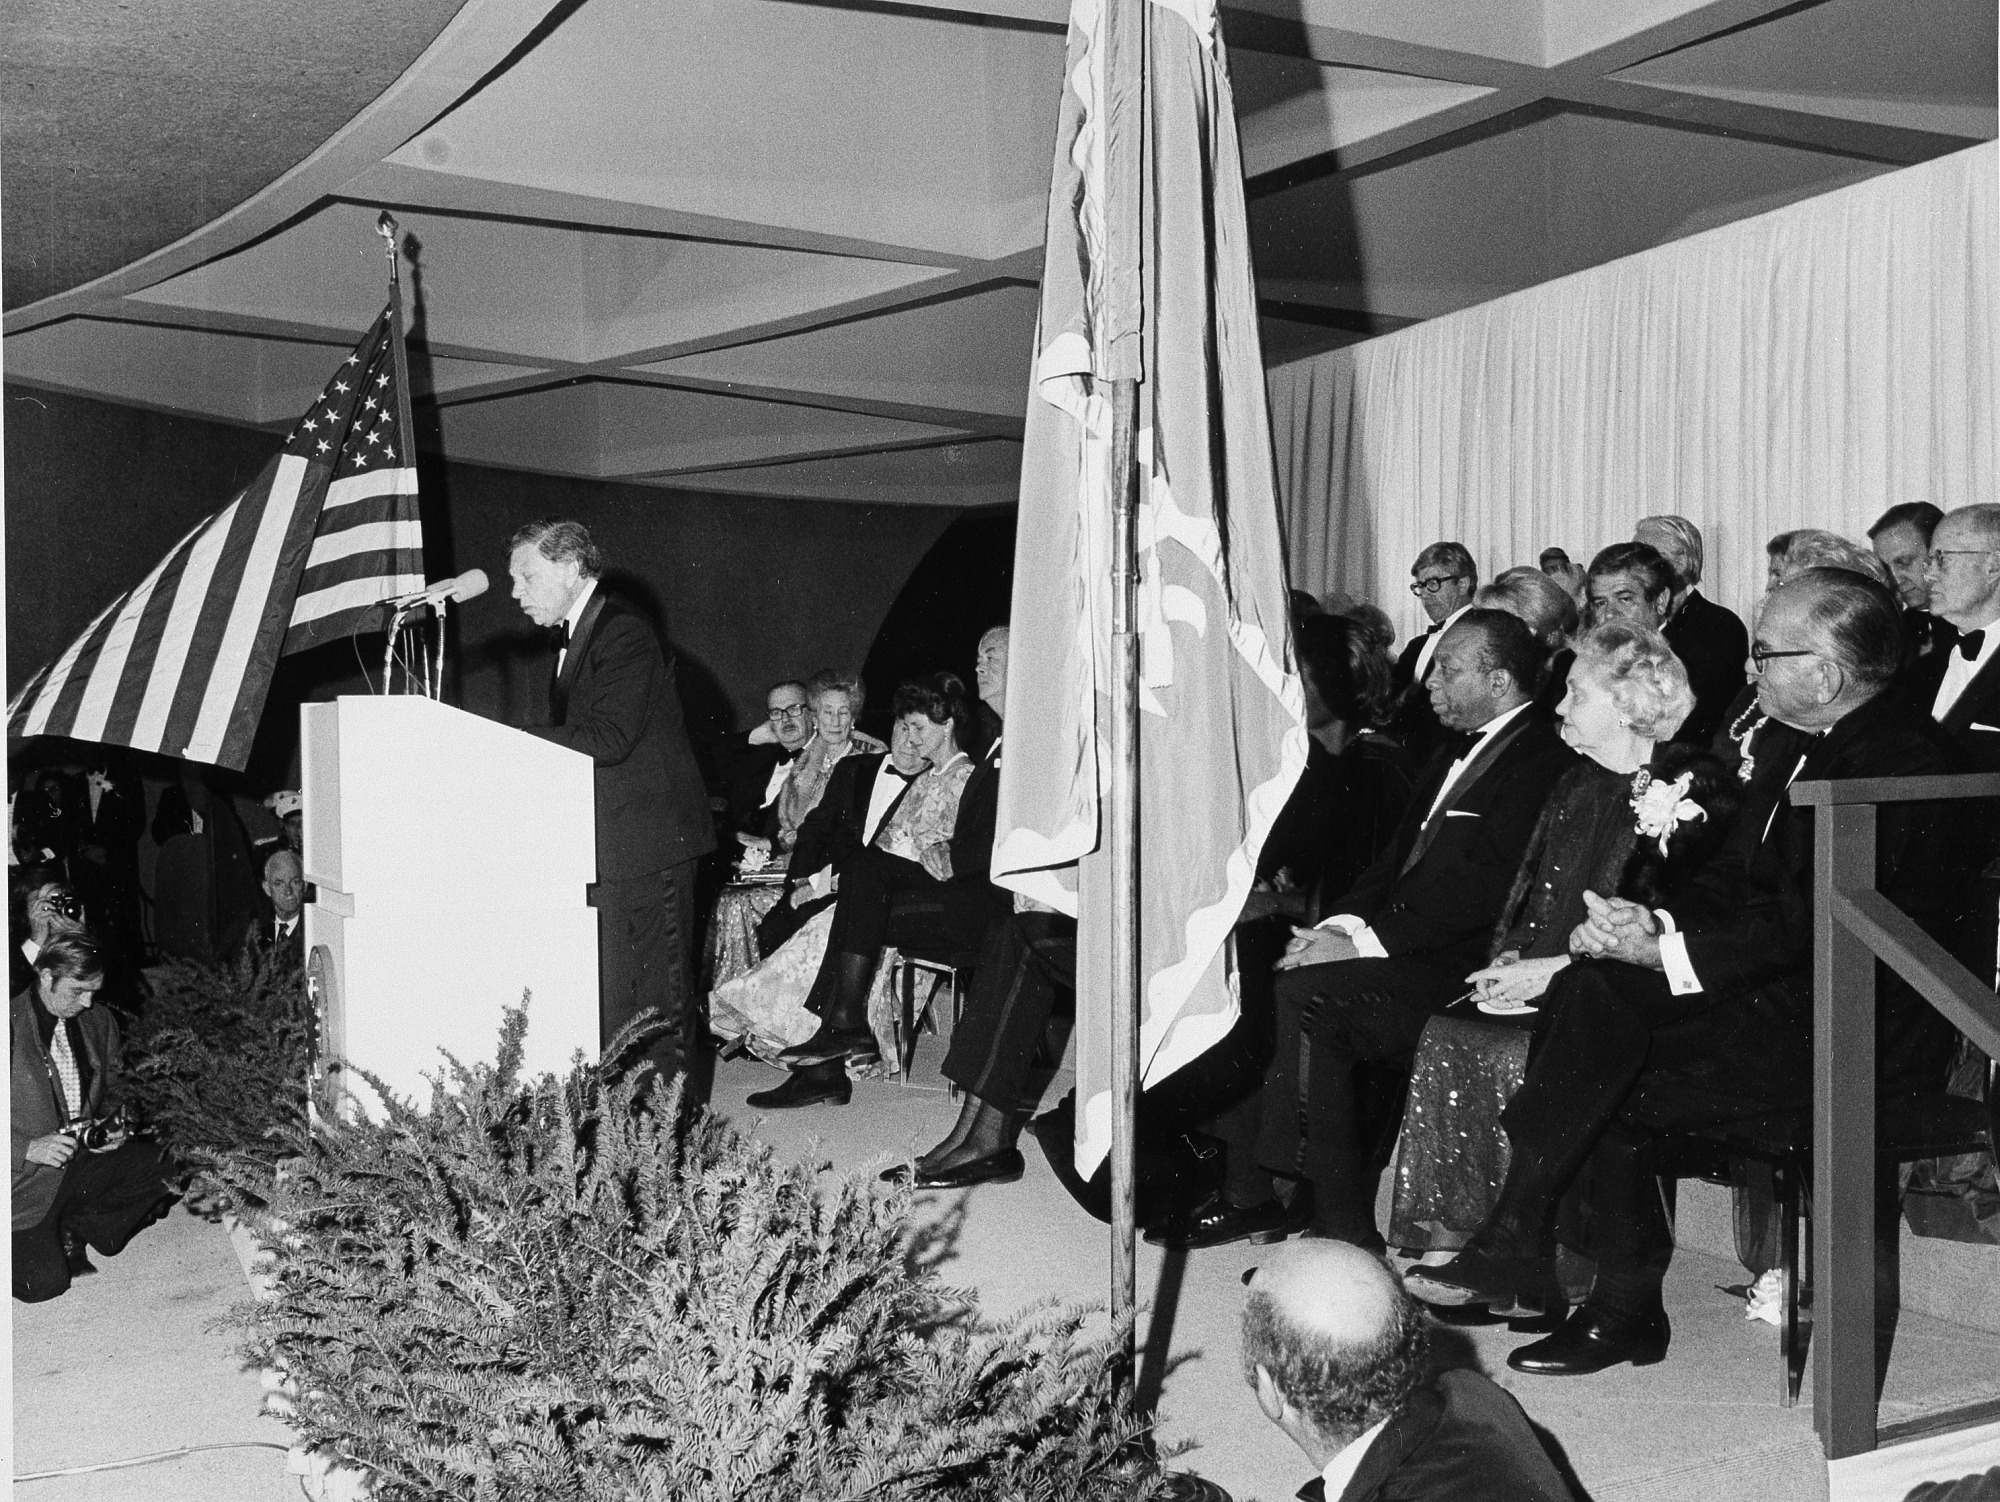 Opening Night, HMSG, by Unknown, 1974, Smithsonian Archives - History Div, 92-1643.